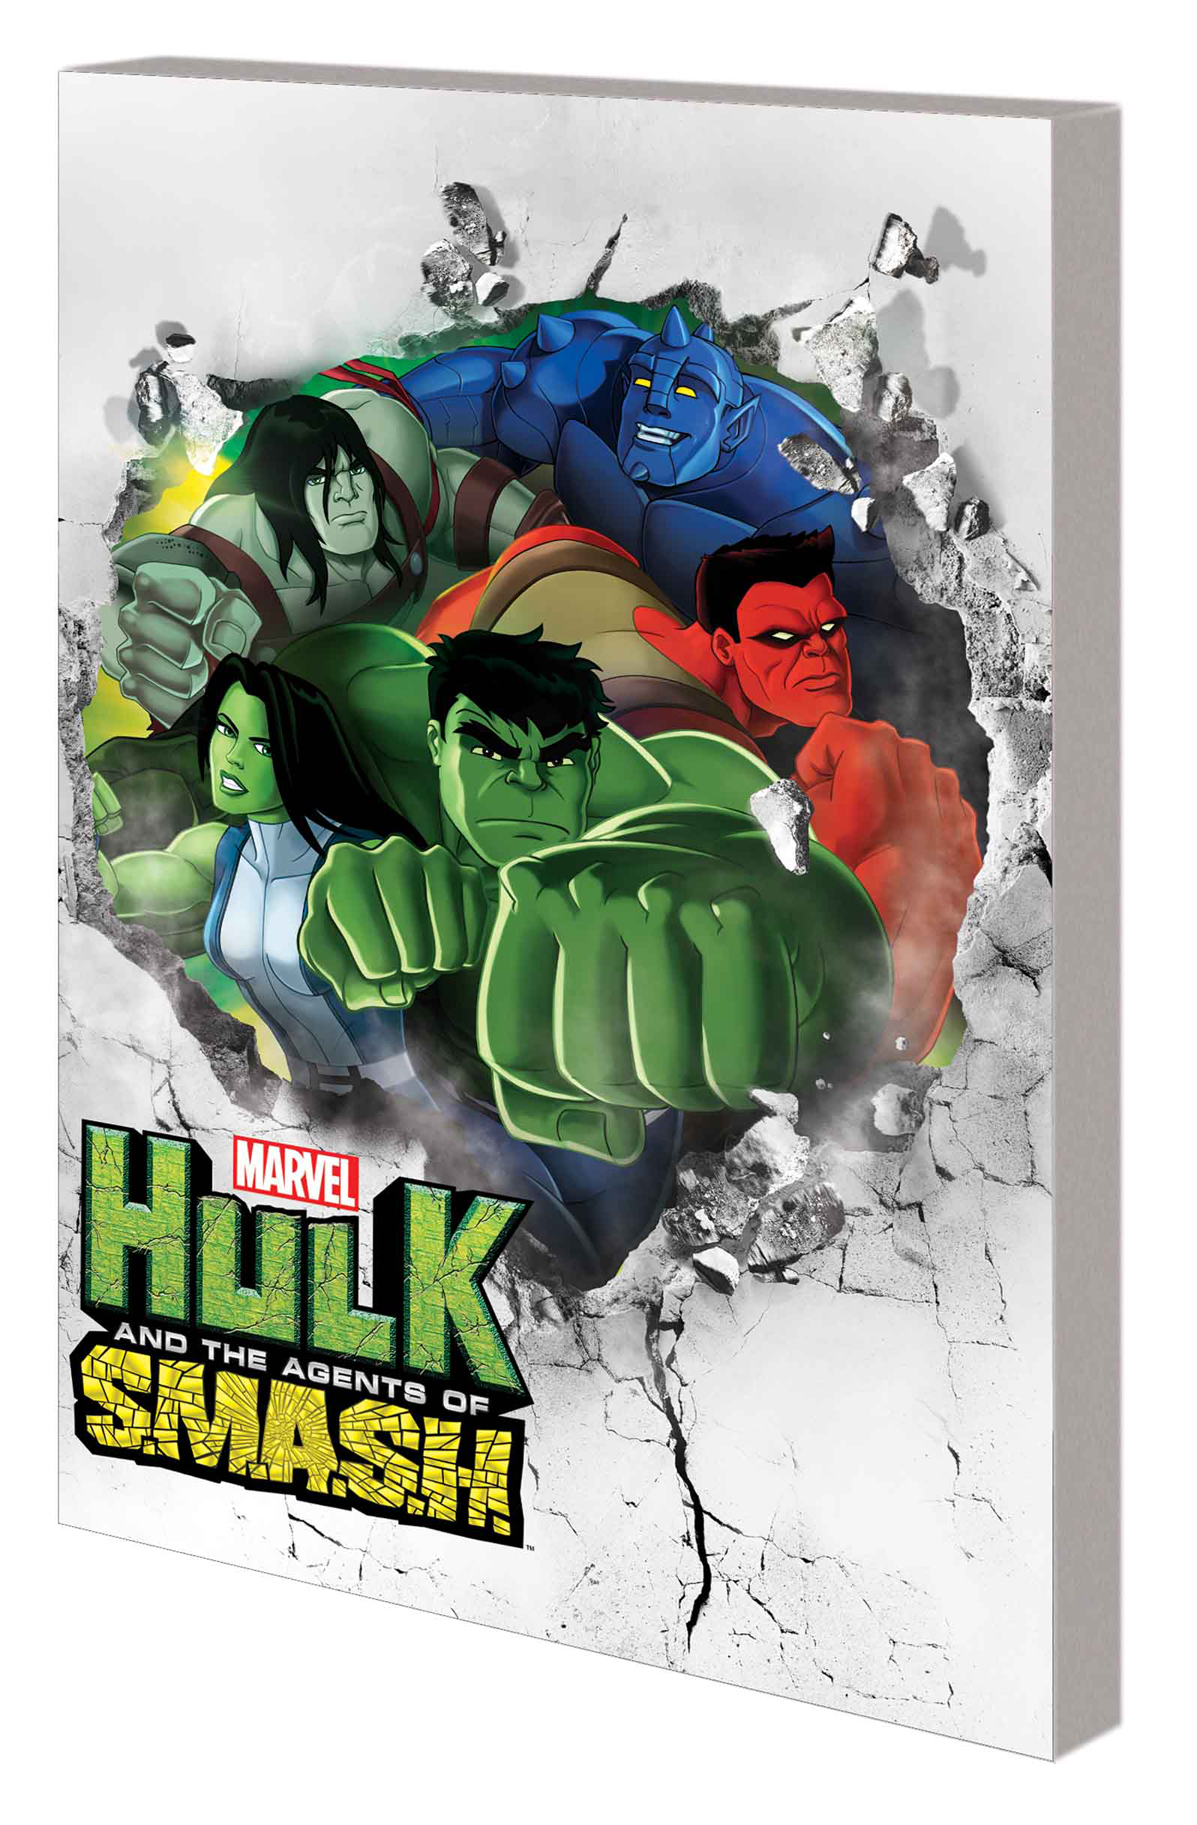 MARVEL UNIVERSE HULK AGENTS OF SMASH DIGEST TP